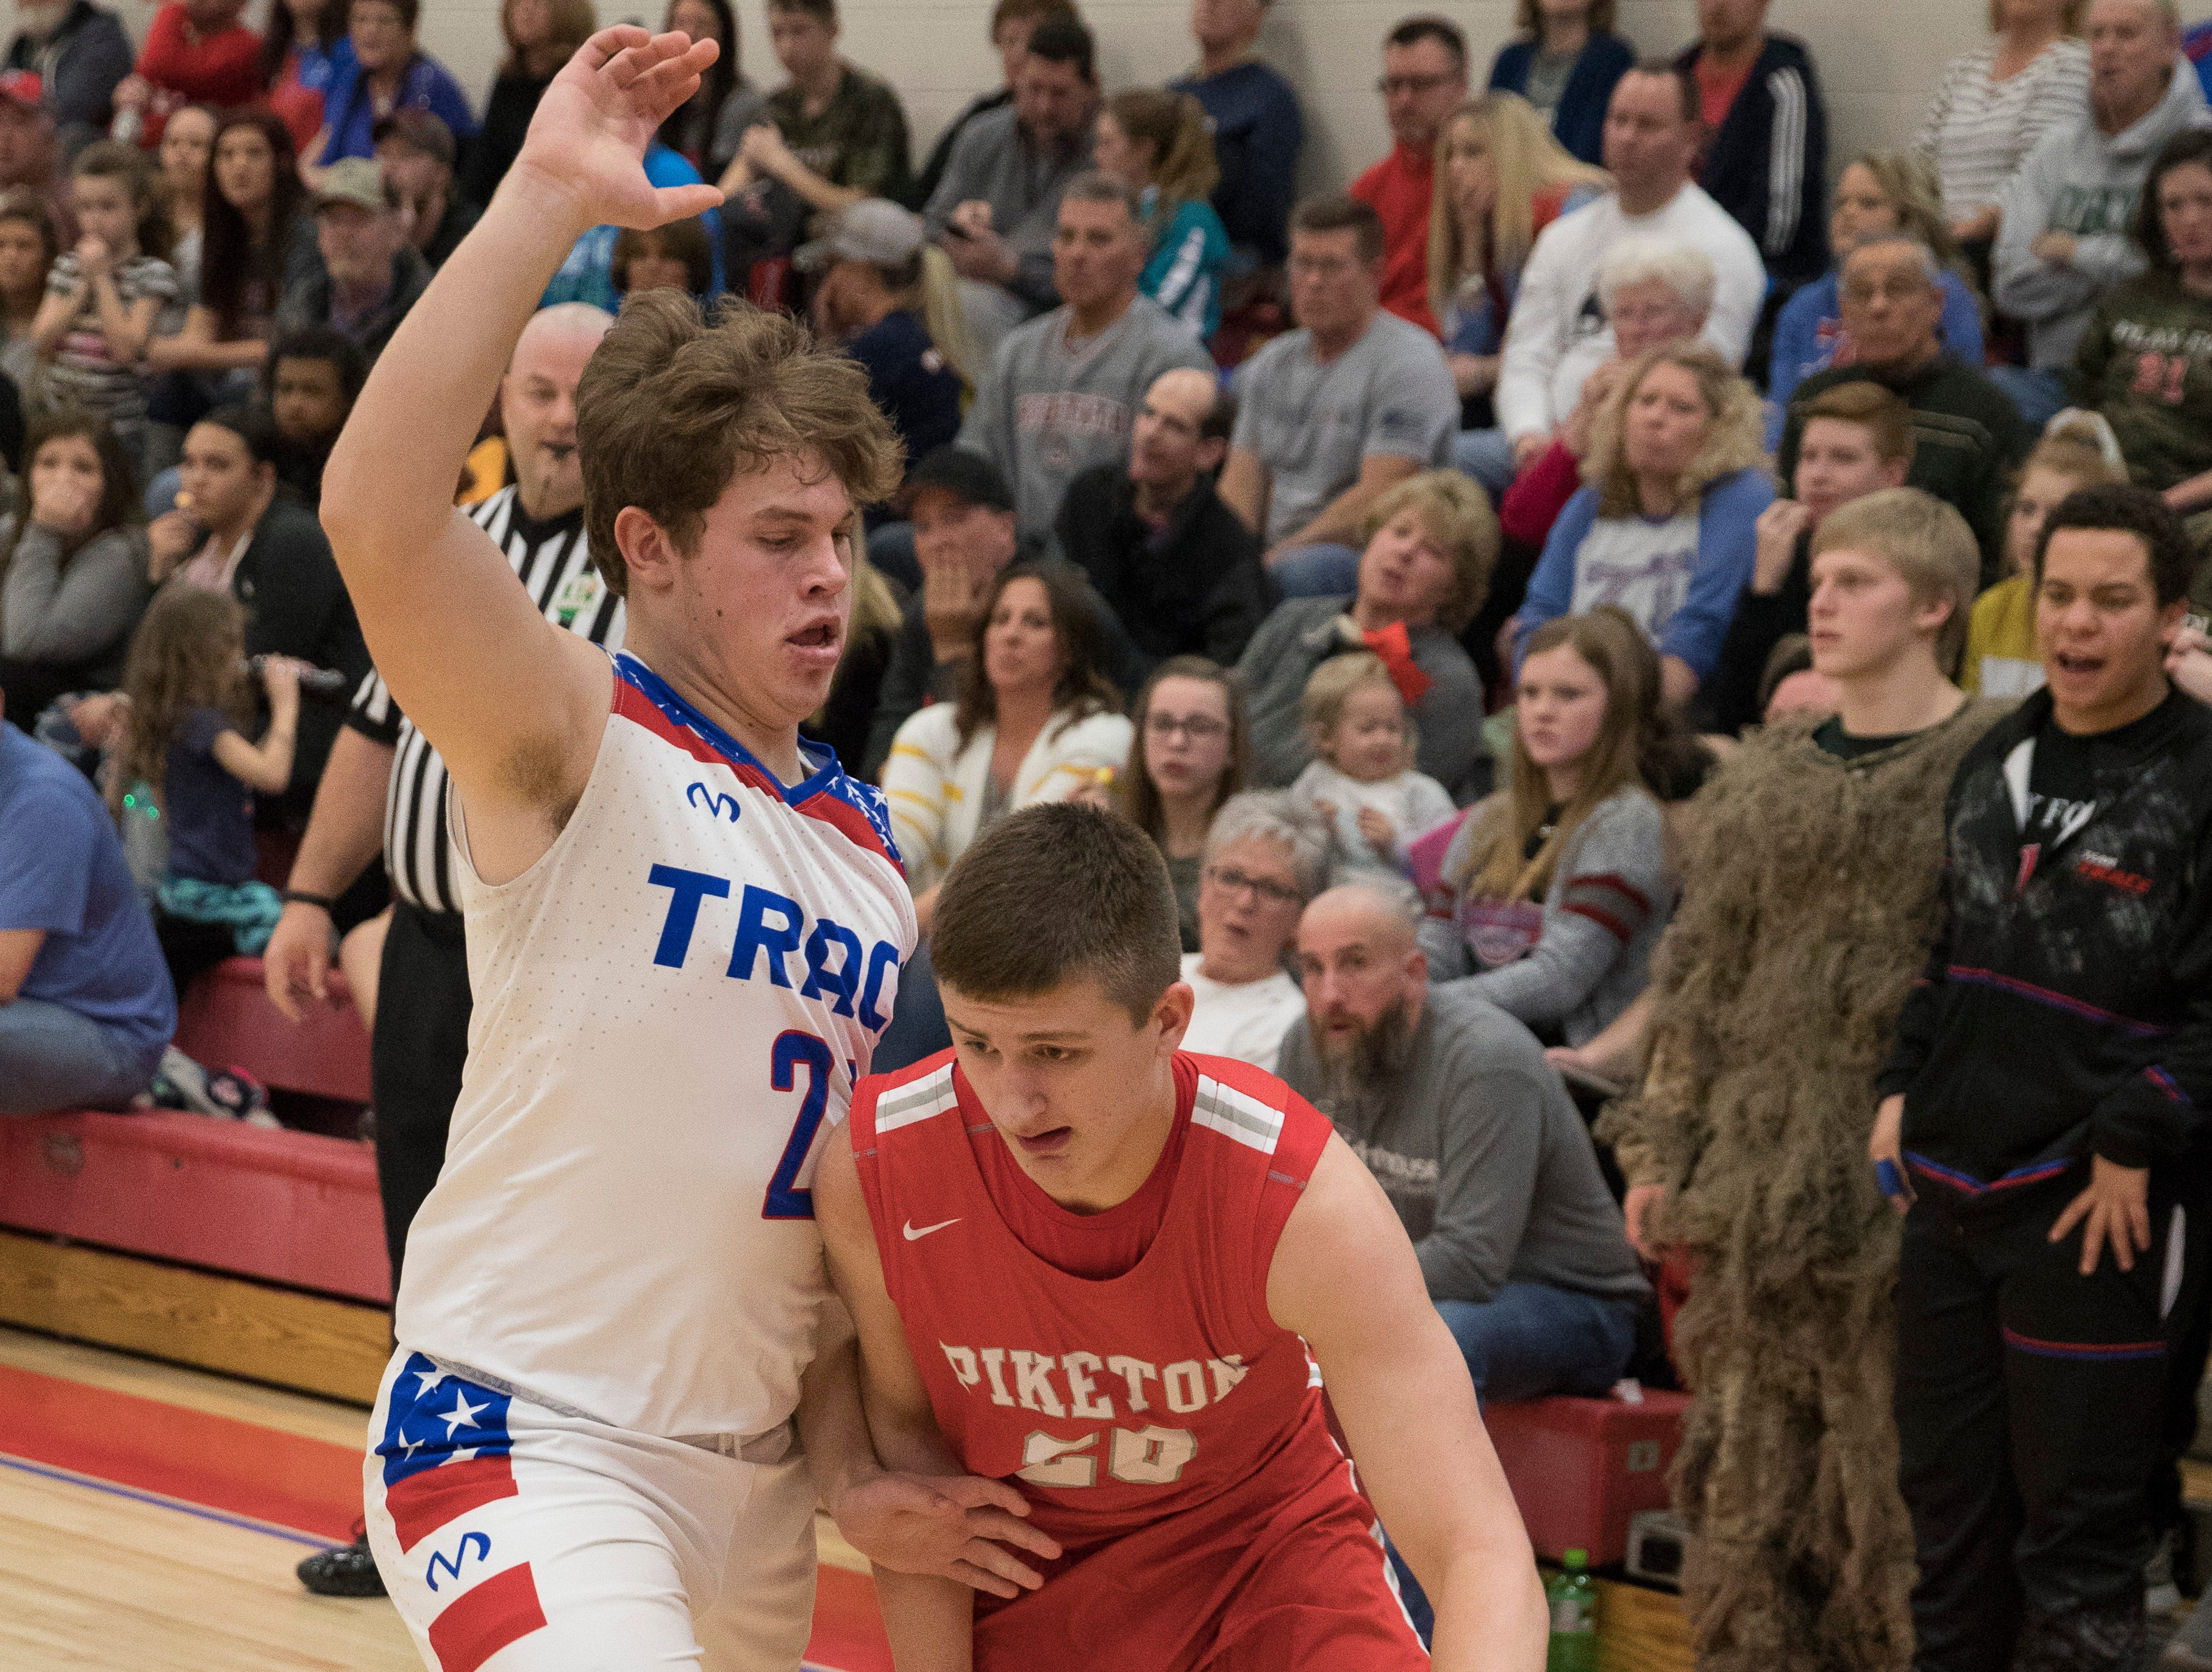 Zane Trace defeated Piketon 55-43 Friday night at Zane Trace High School to guarantee them a share of the SVC title.